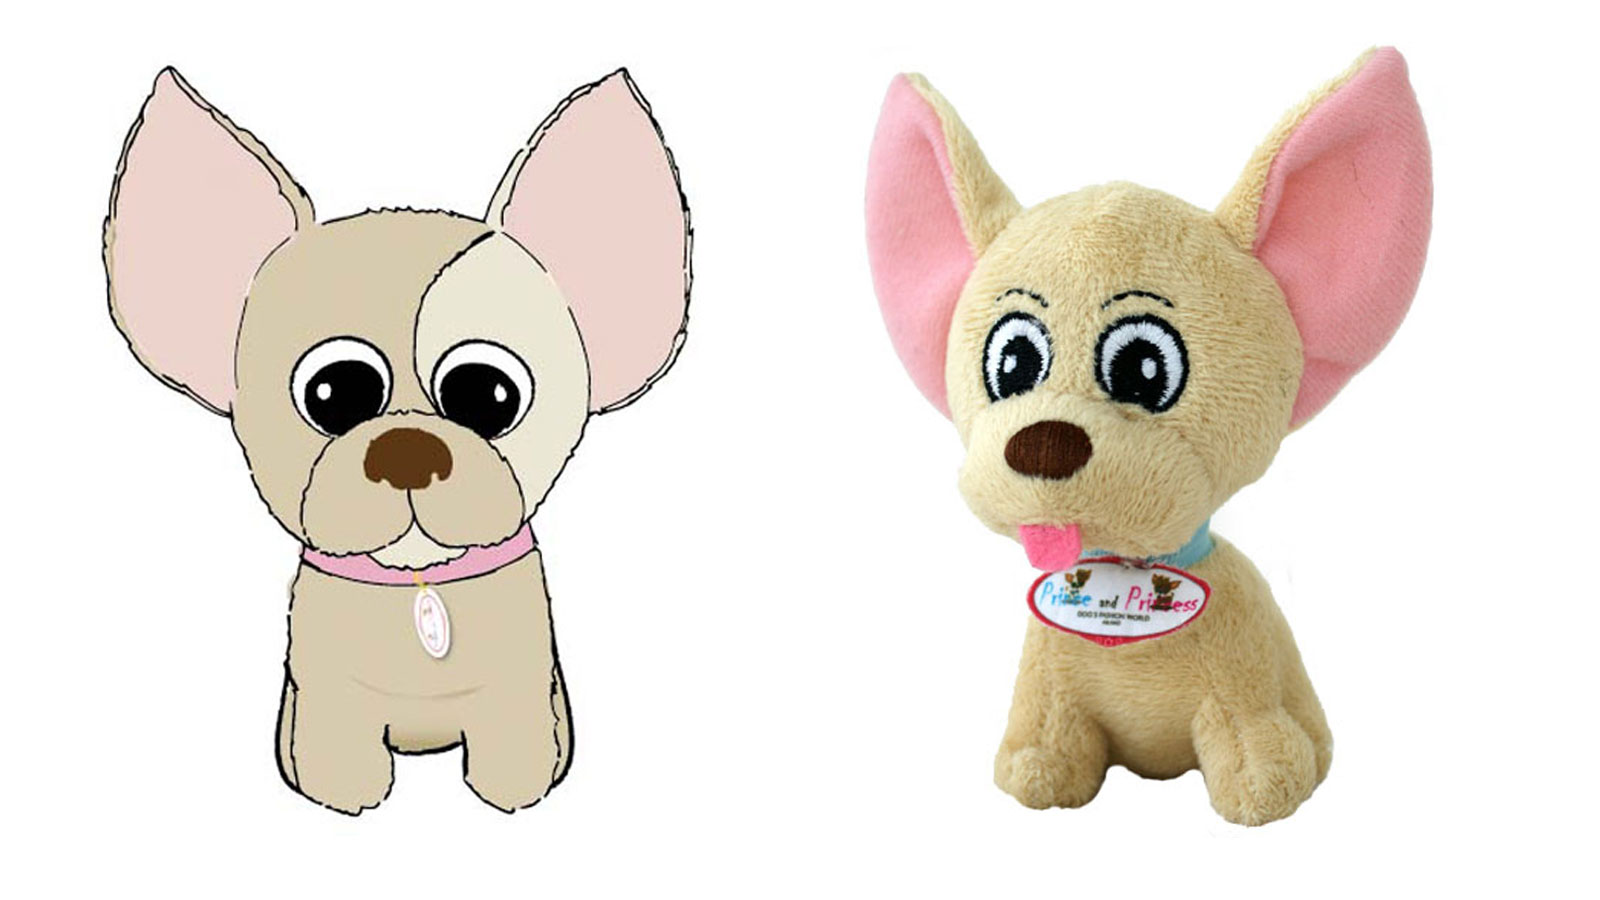 Peluche promozionale CHIHUAHUA - BY PRINCE AND PRINCESS